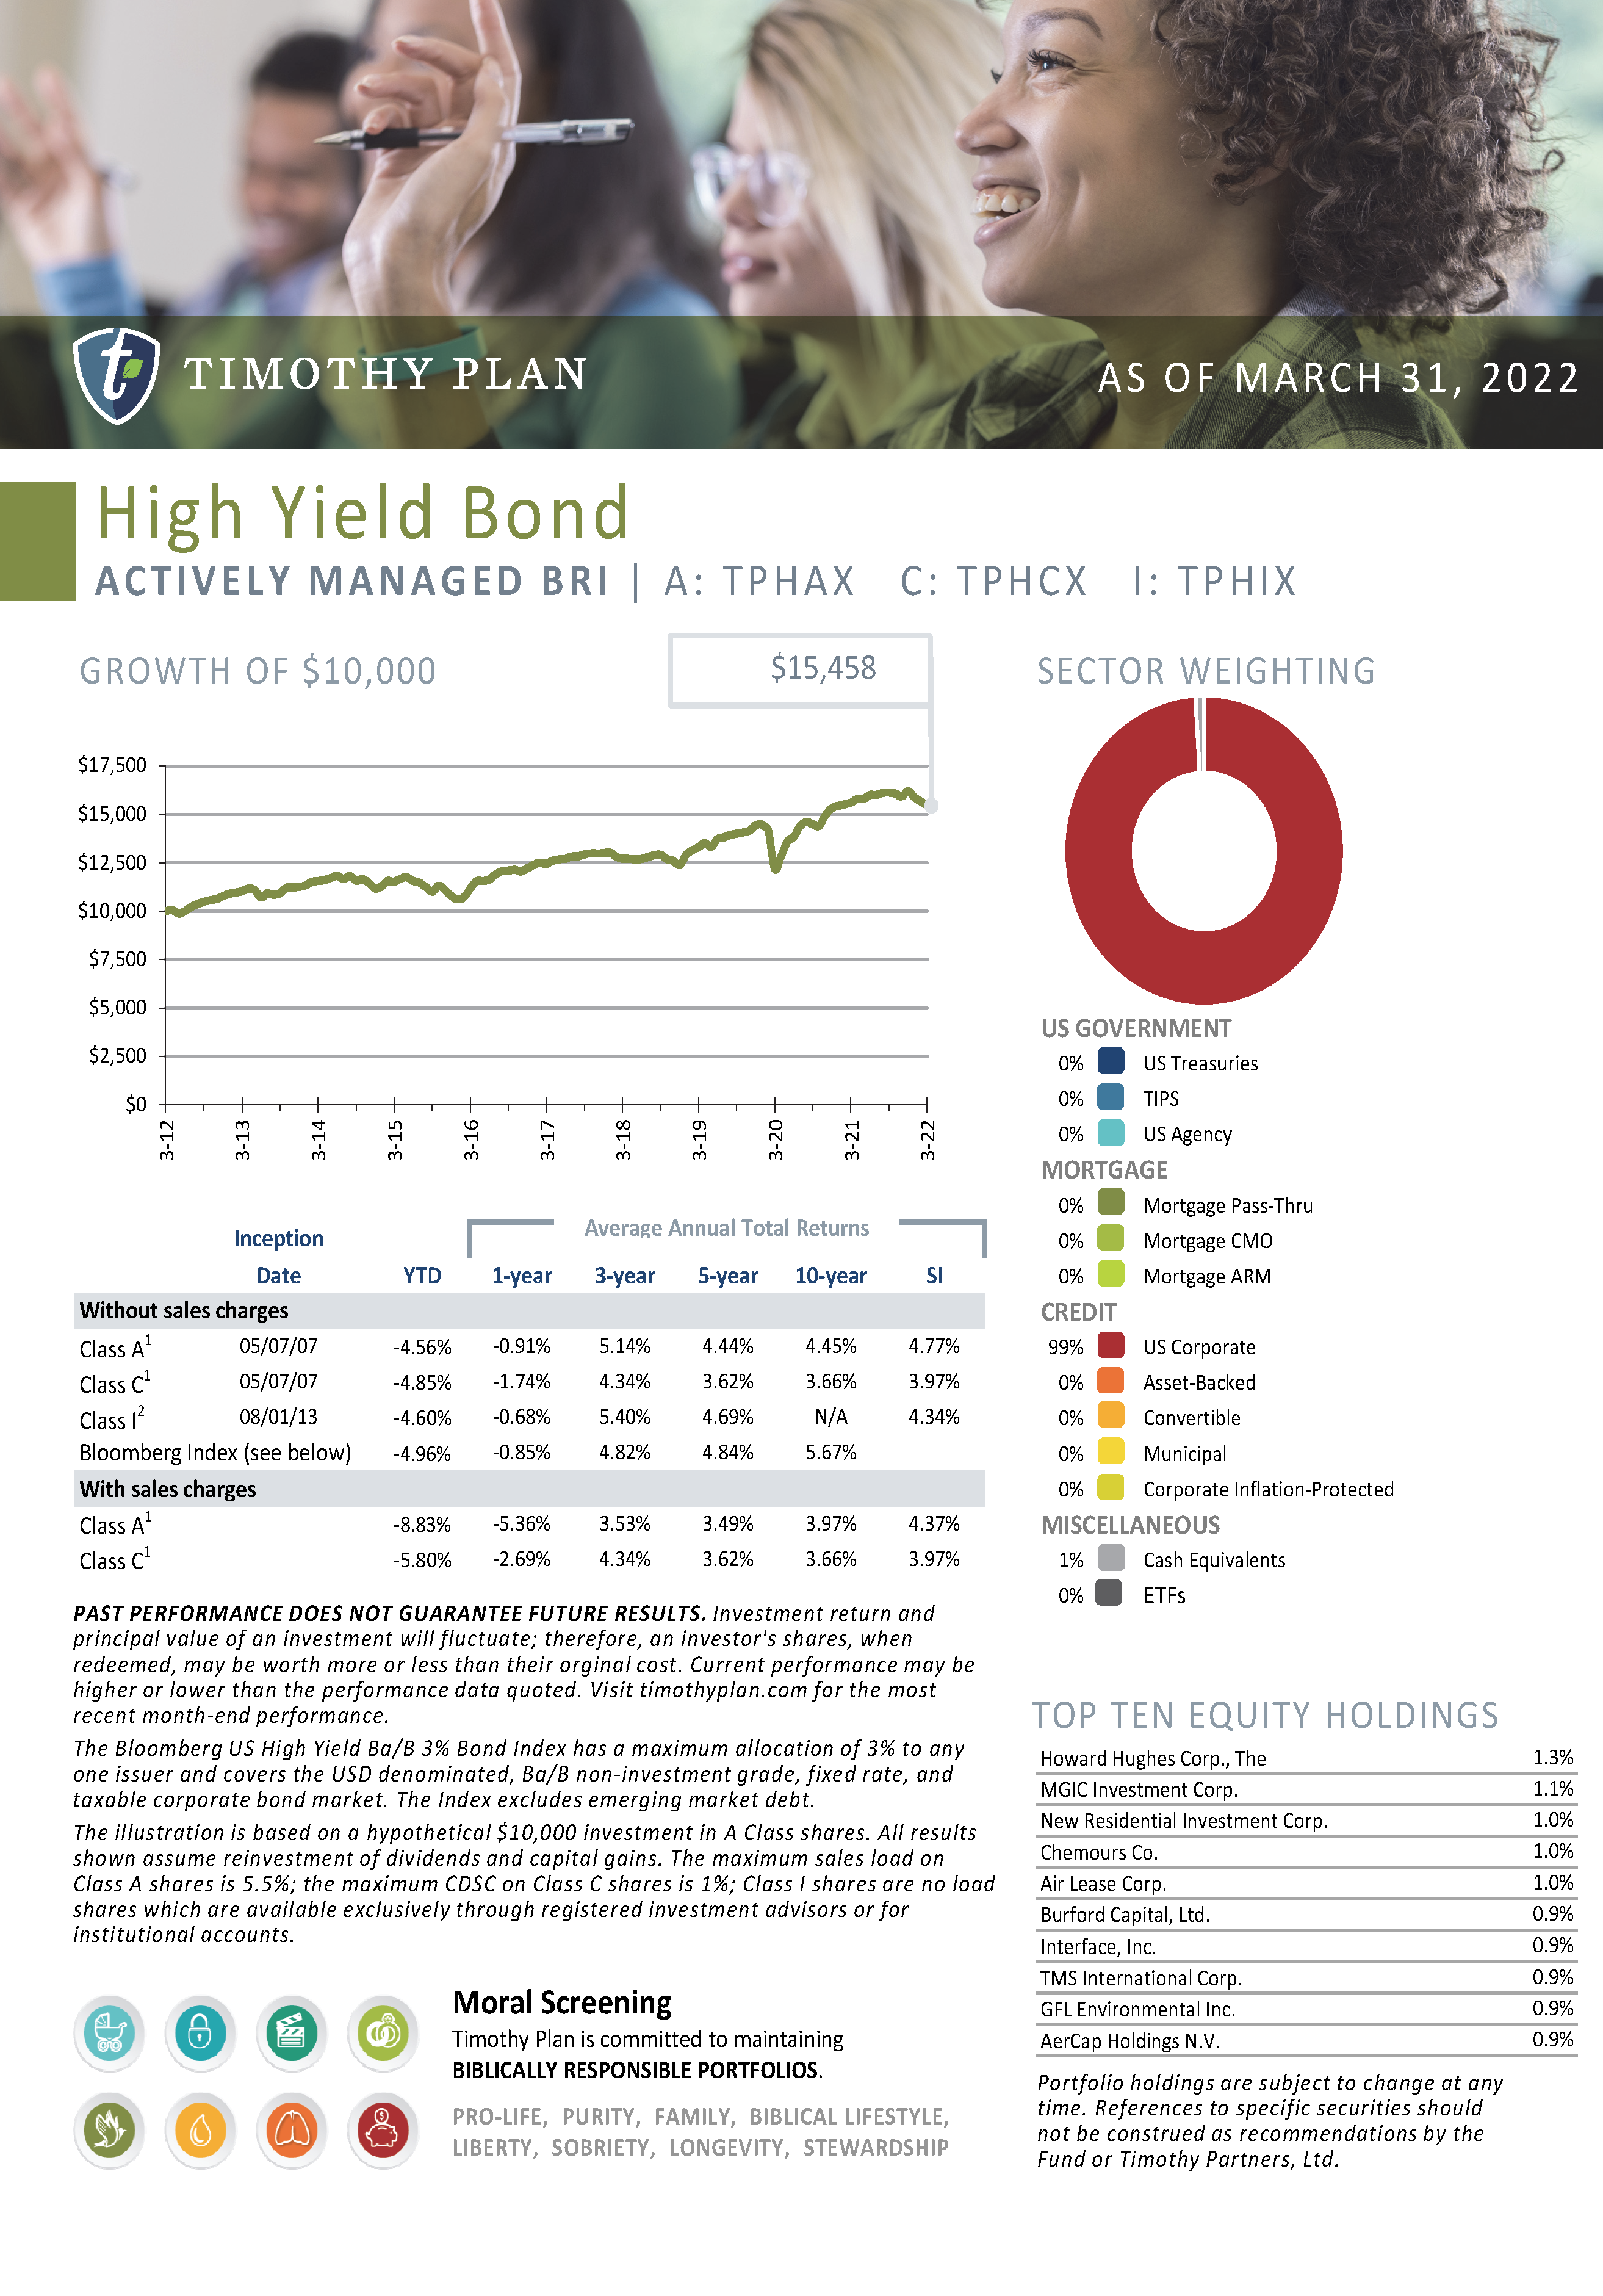 High Yield Bond page 13